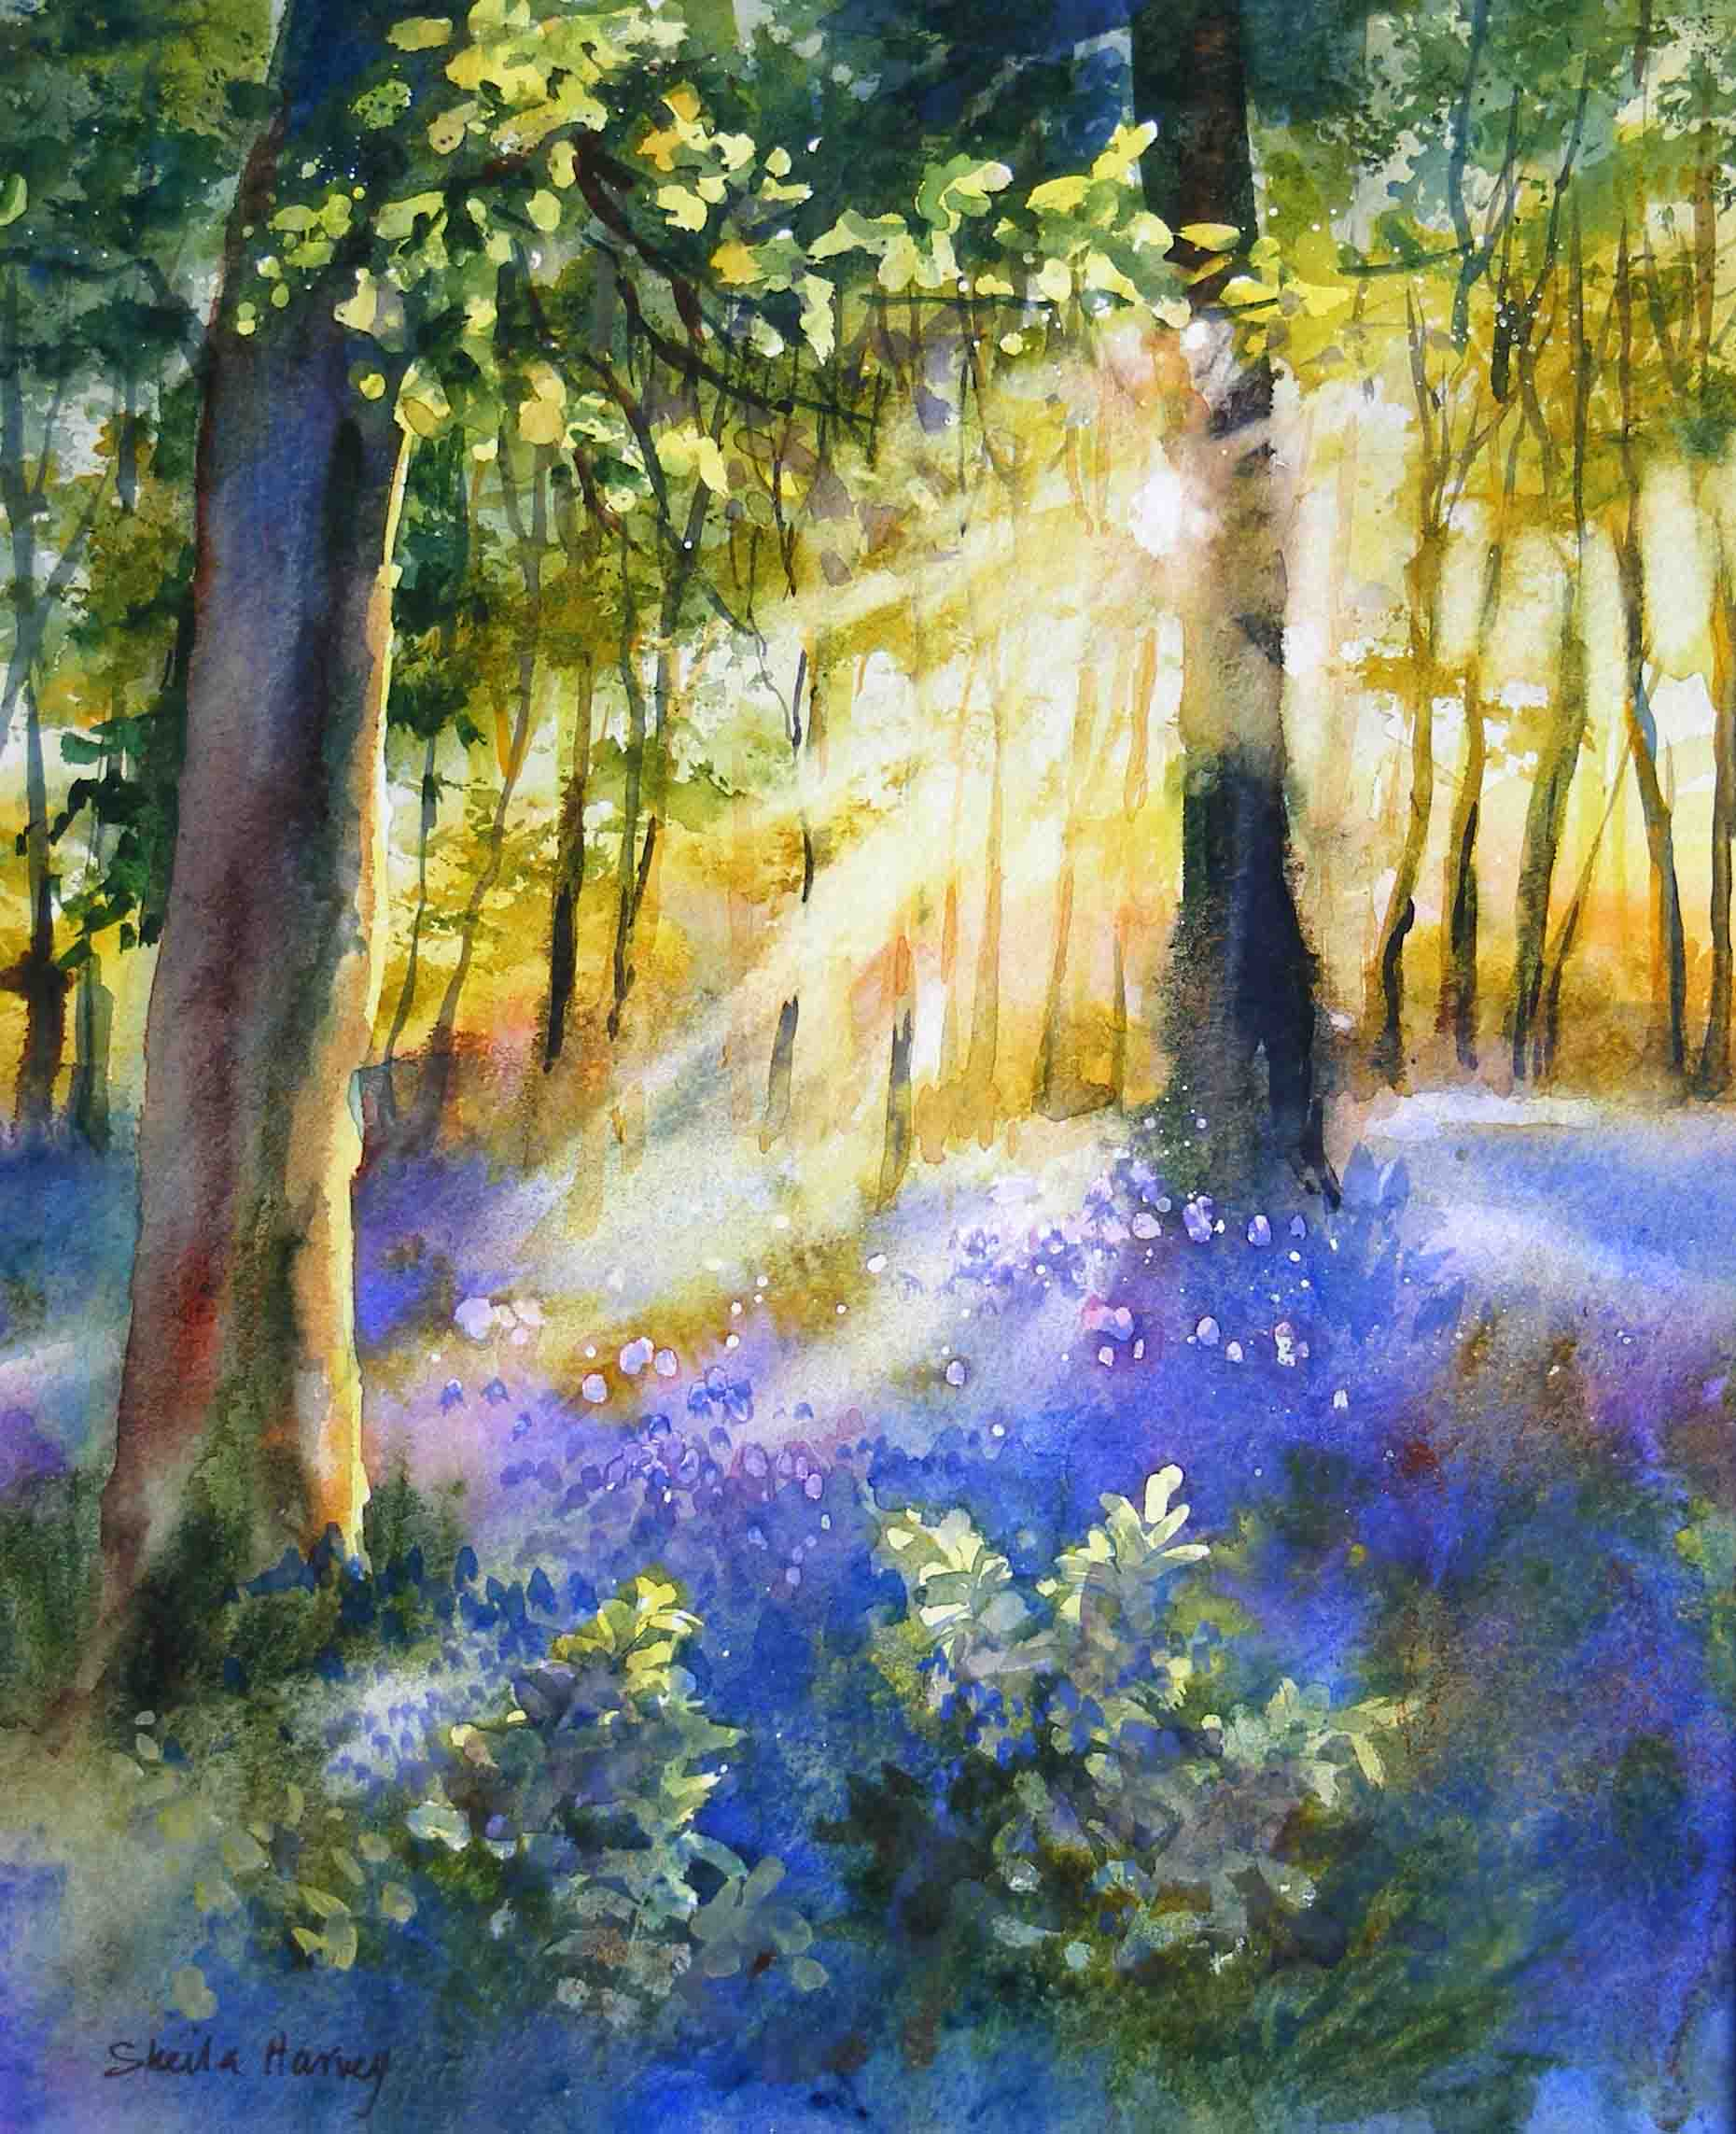 13 Sunlight & Bluebells